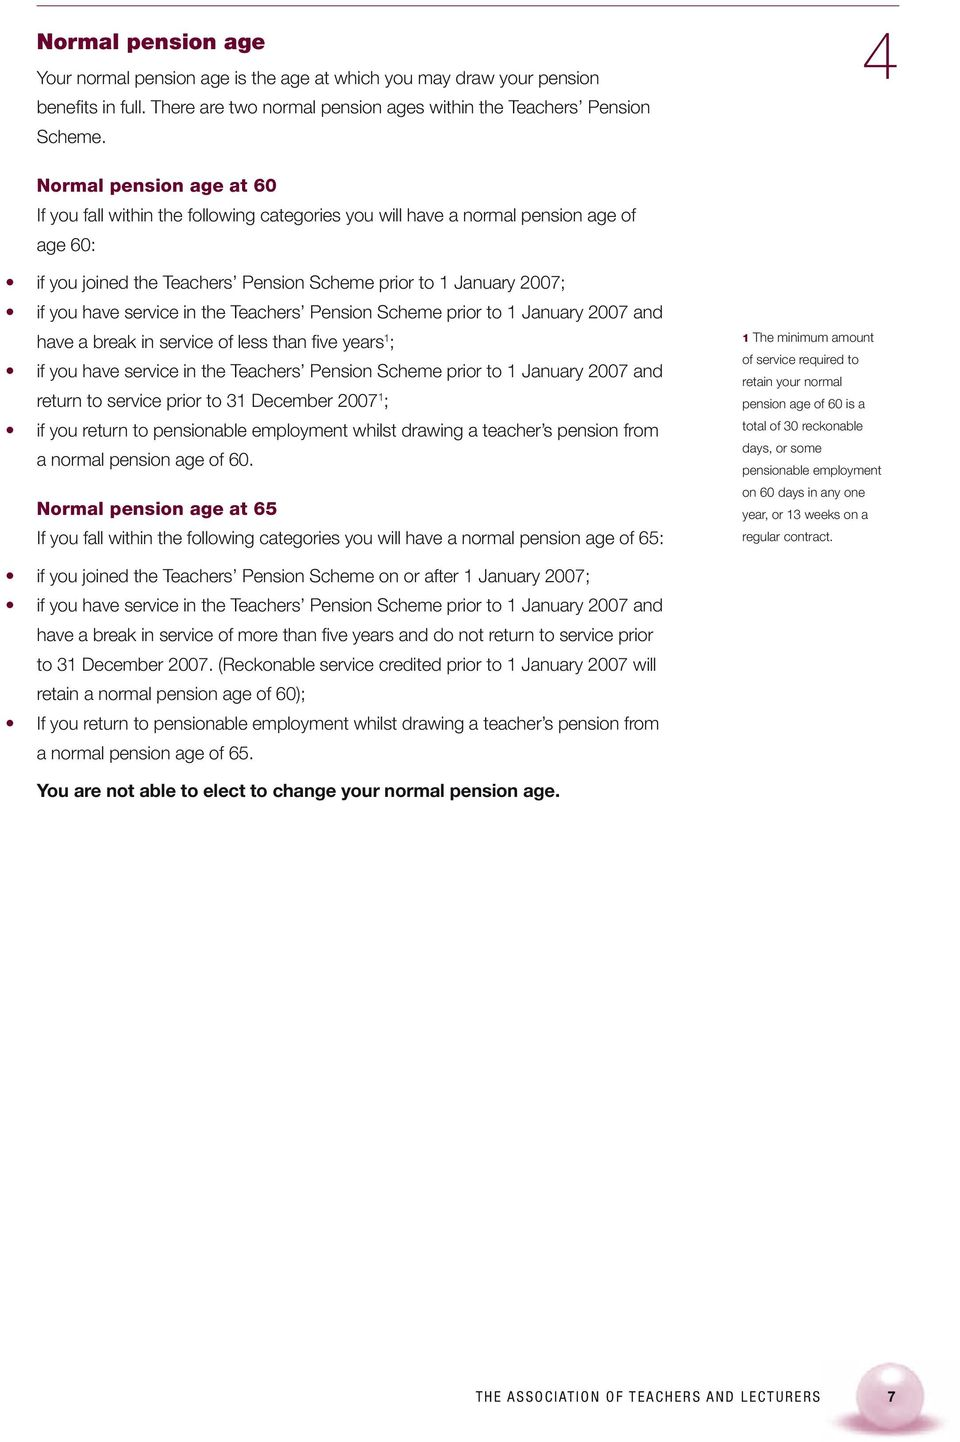 service in the Teachers Pension Scheme prior to 1 January 2007 and have a break in service of less than fi ve years 1 ; if you have service in the Teachers Pension Scheme prior to 1 January 2007 and